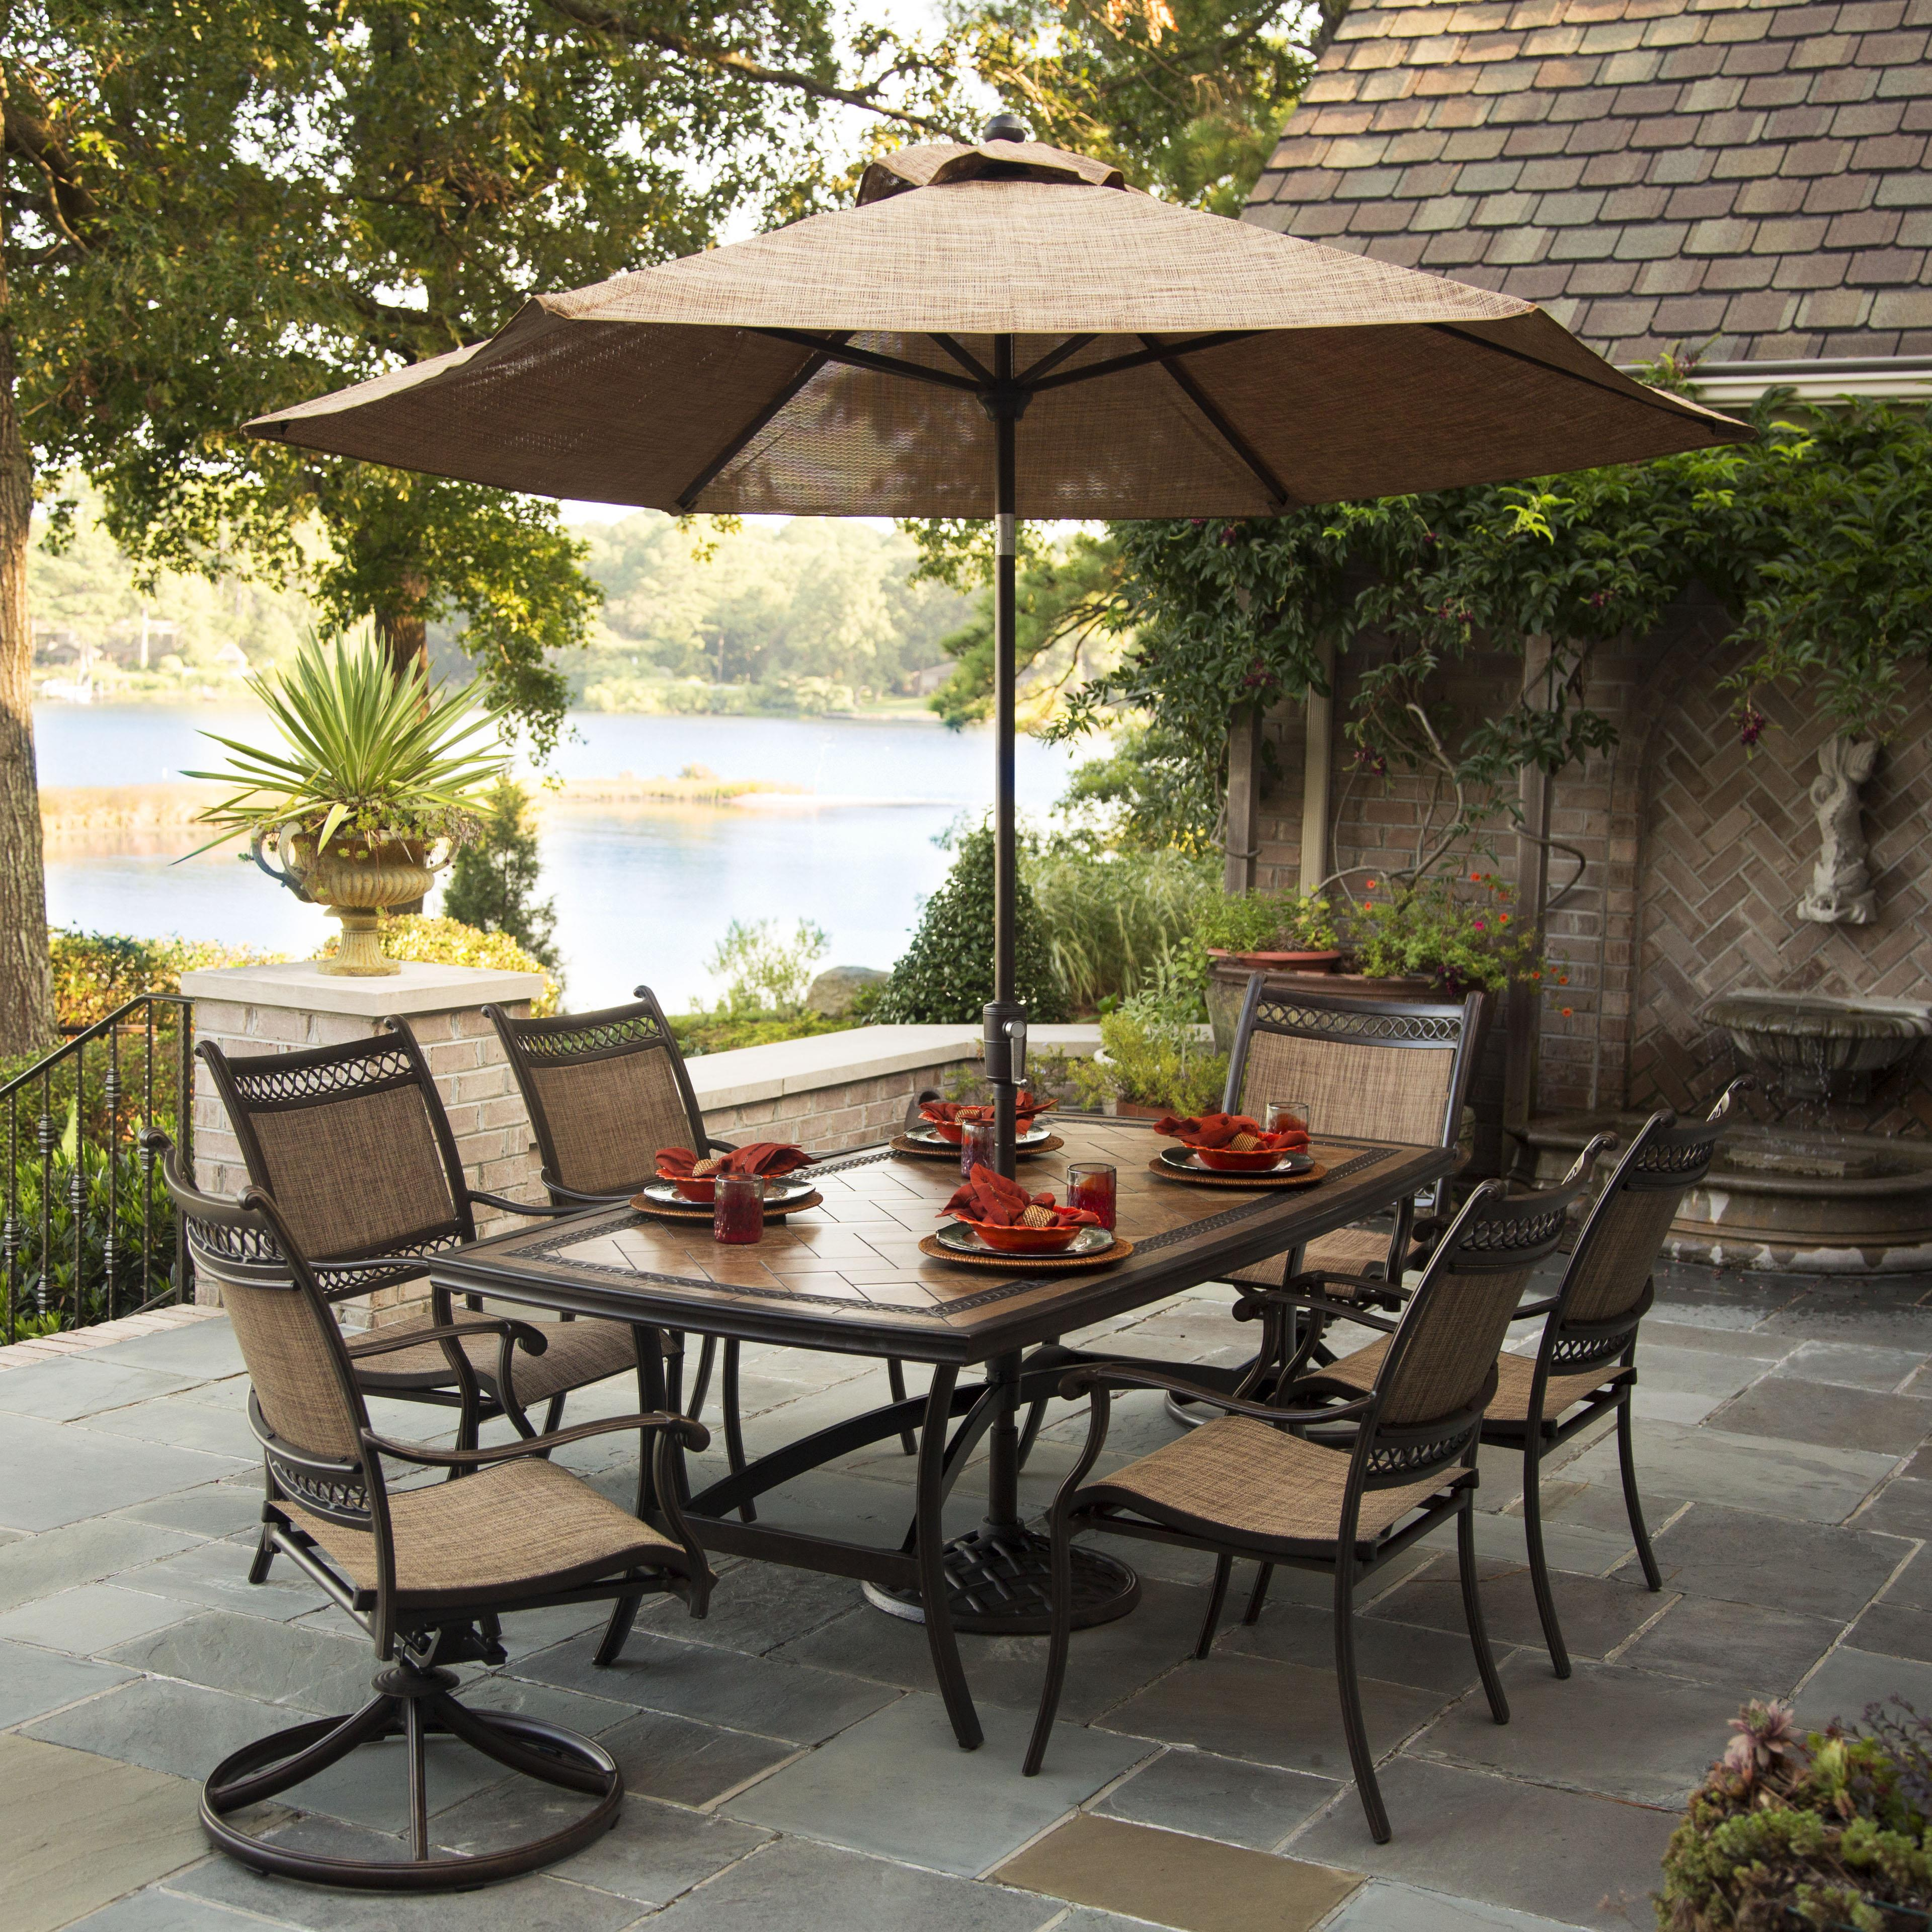 Outdoor patio dining sets with umbrella oakland living for Patio furniture sets with umbrella